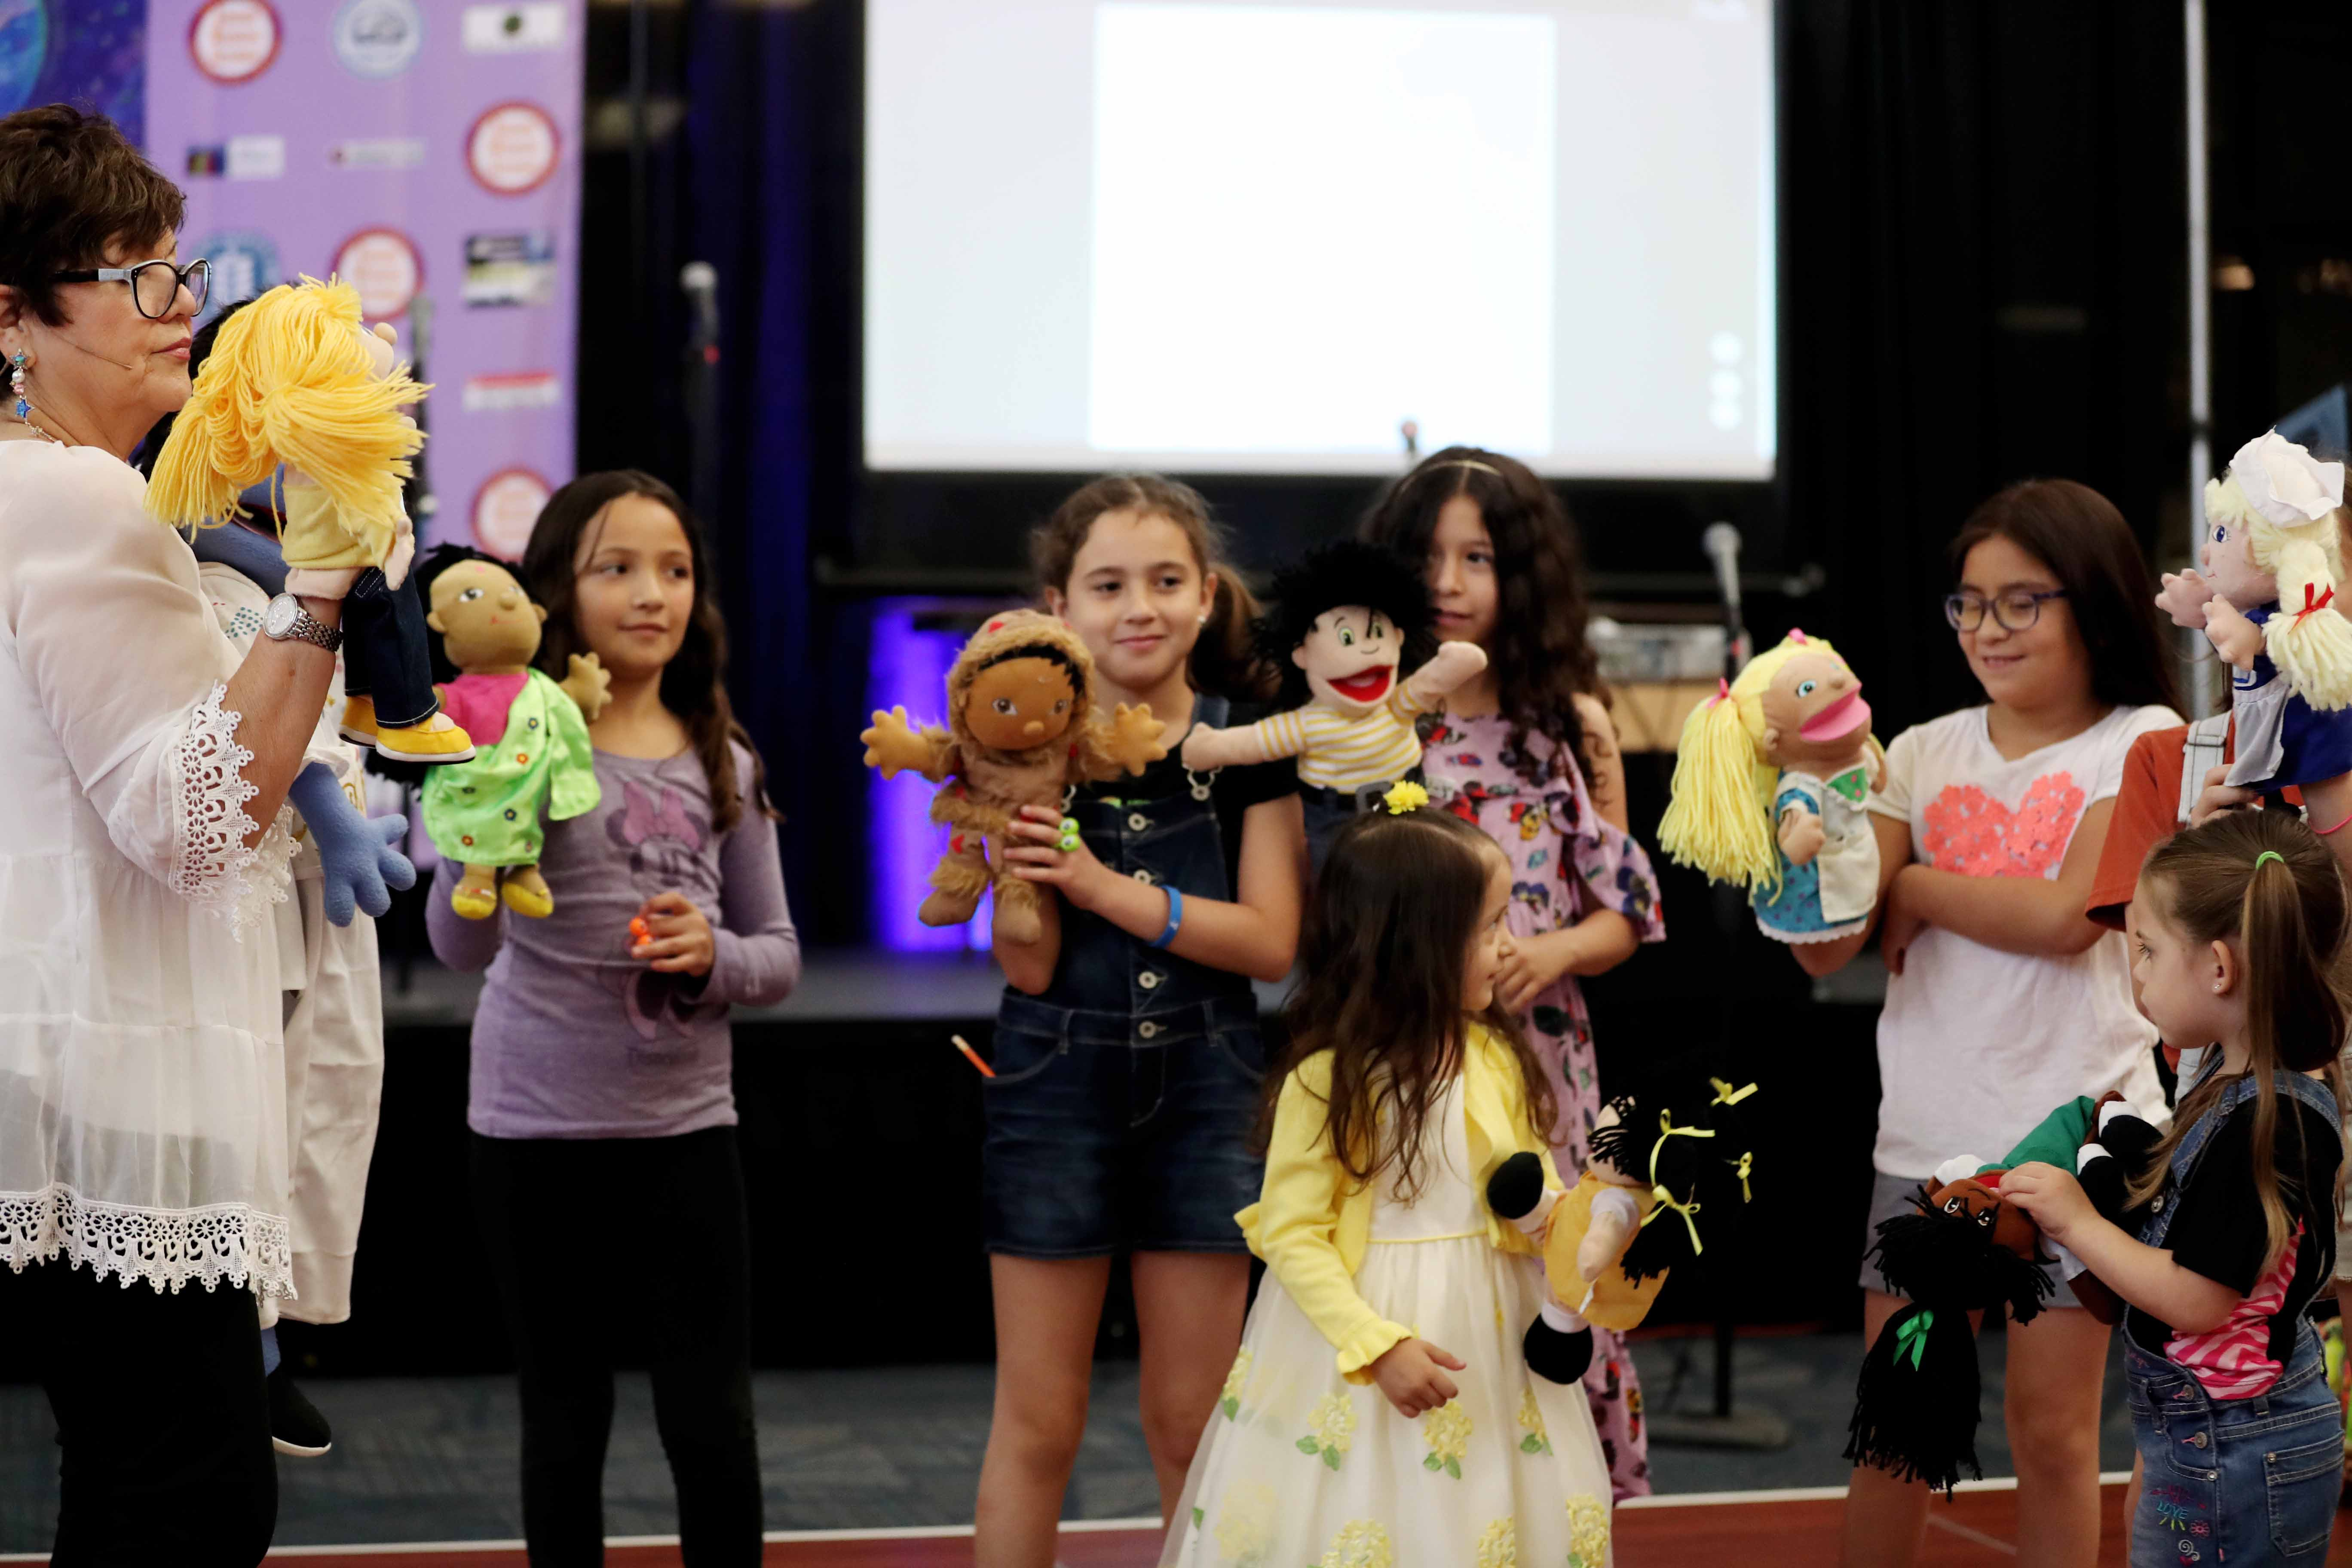 The book festival included activities such as puppetry.